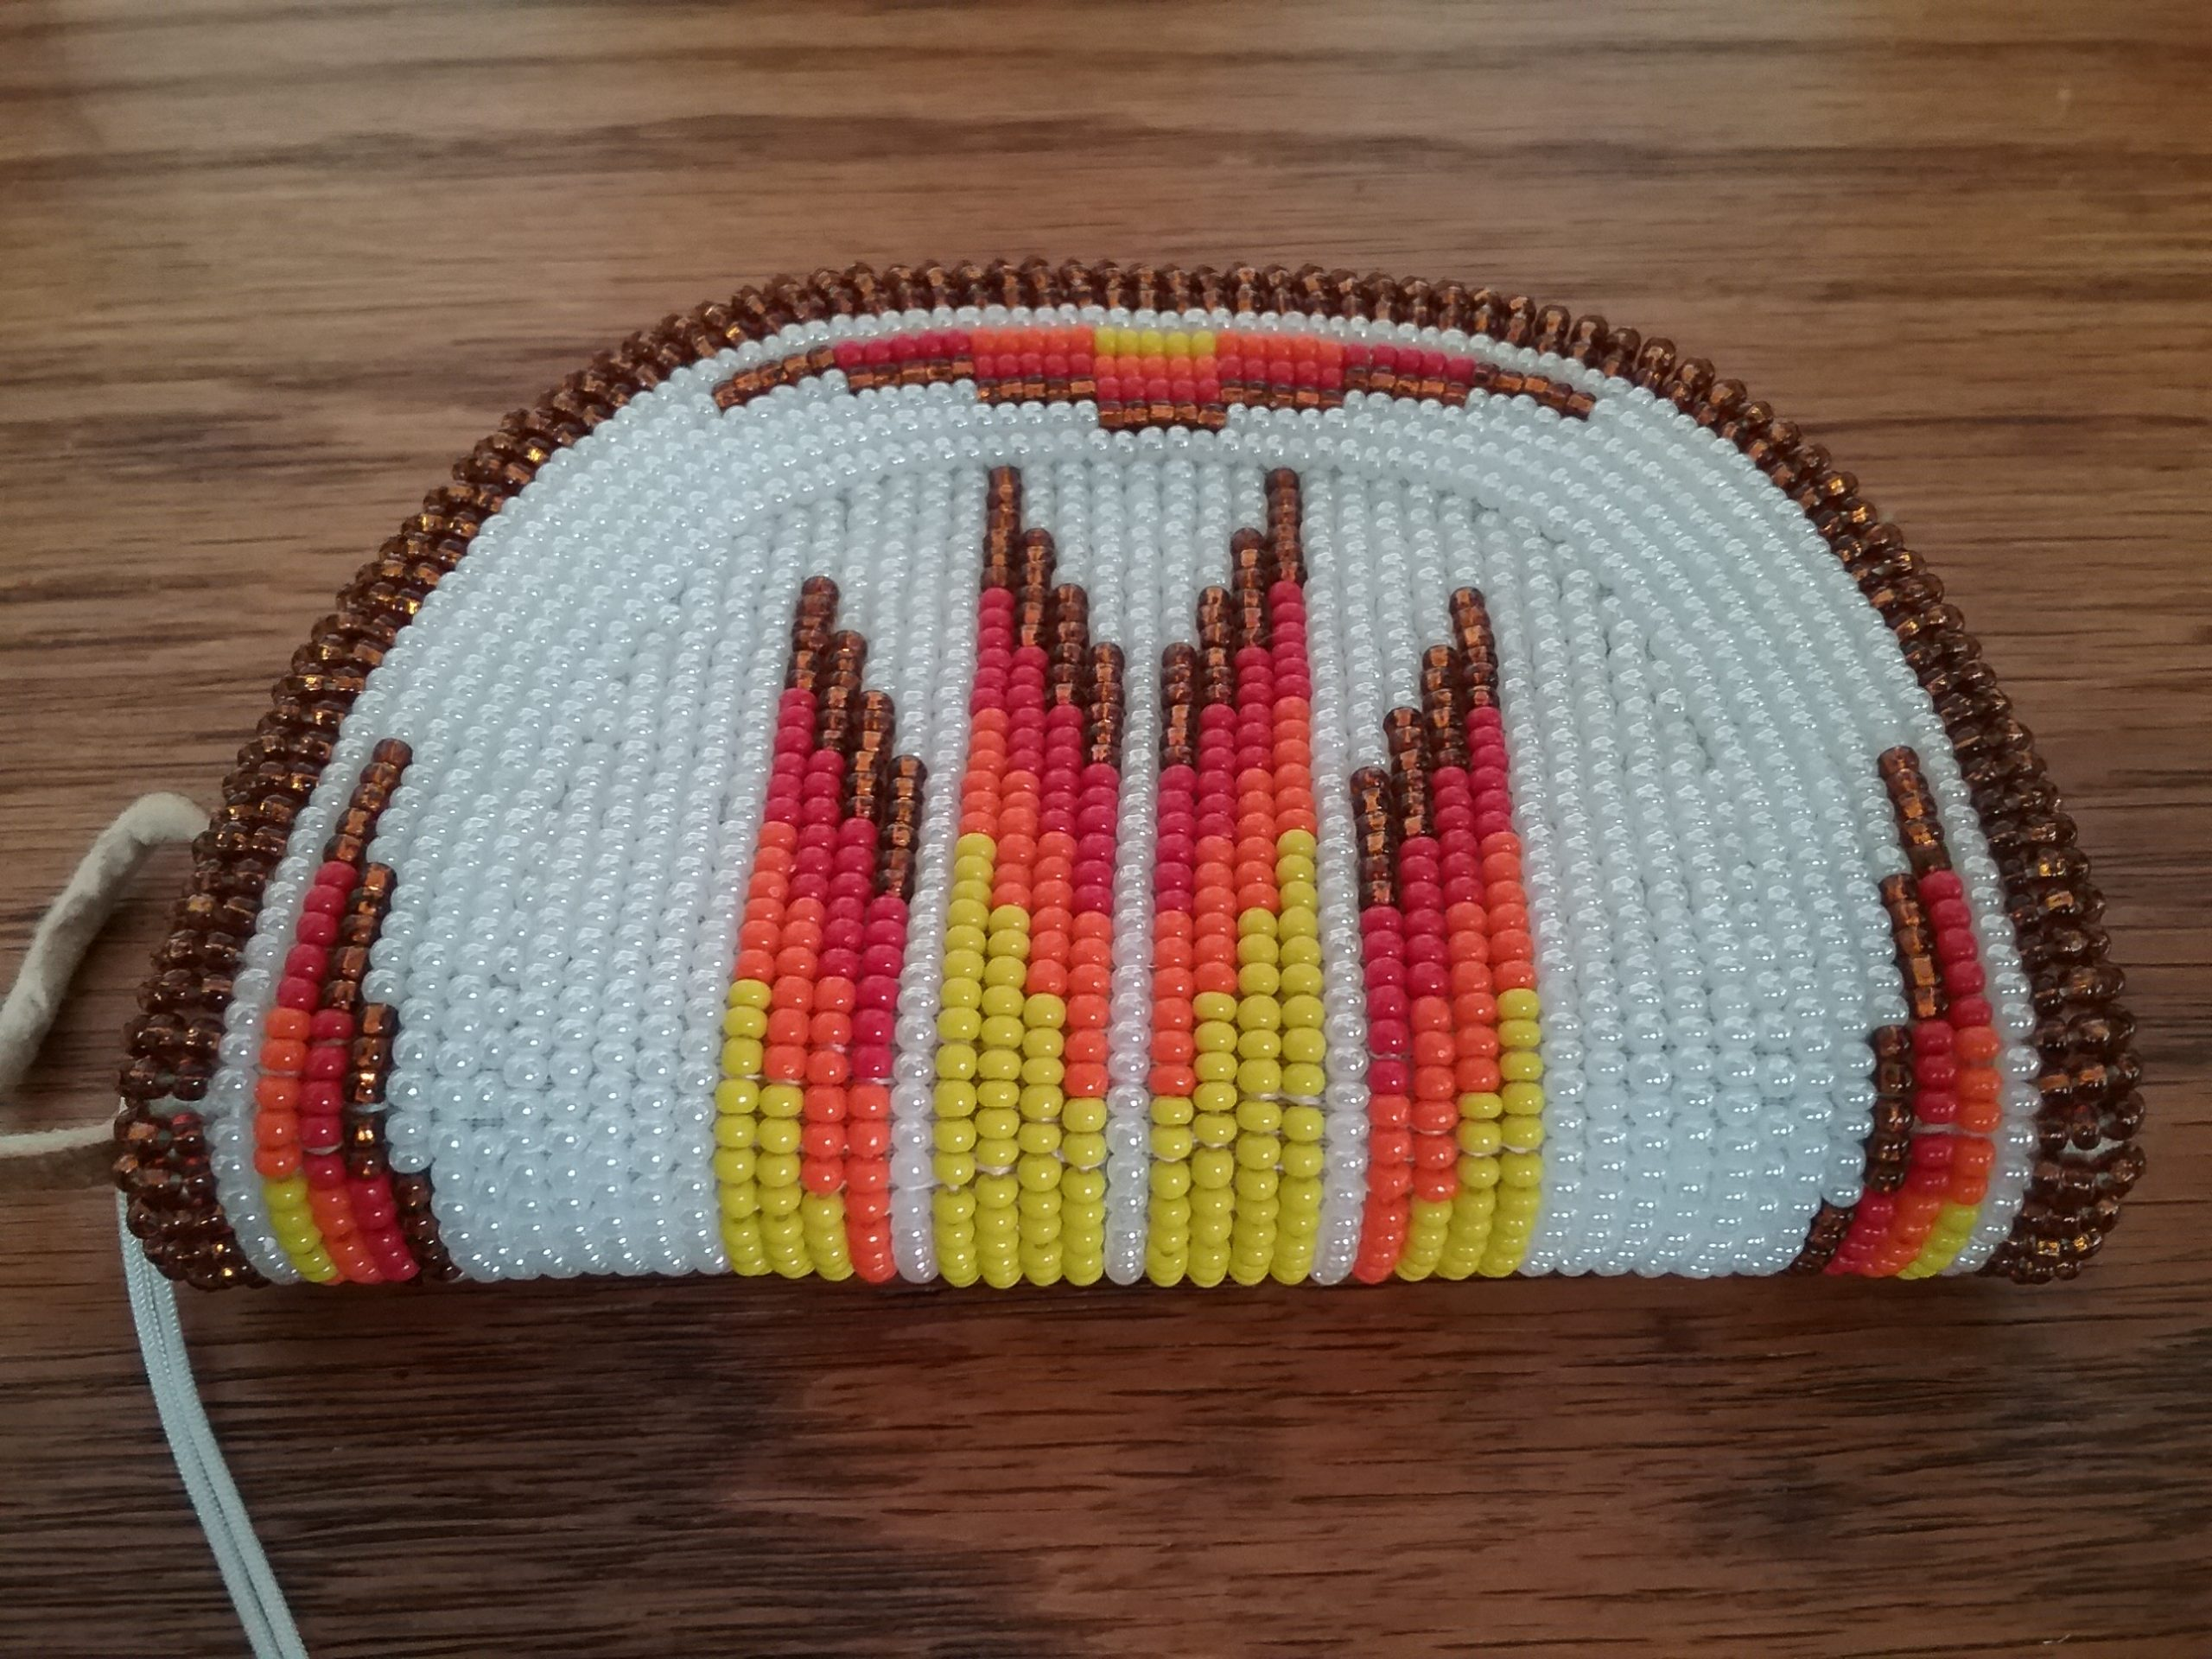 Coin Purse: Purse made by Shishone Bannock in Fort Hall, Indiana, presented by The Church of The Four Winds in Portland, Oregon, to Cindy Moore, who grew up in Morrison County, ­Minnesota. Cindy served as the music director for the church, which is an inter-tribal inter-­denominational Native American church. Purse received in 1996. MCHS collections, #2007.4.1.